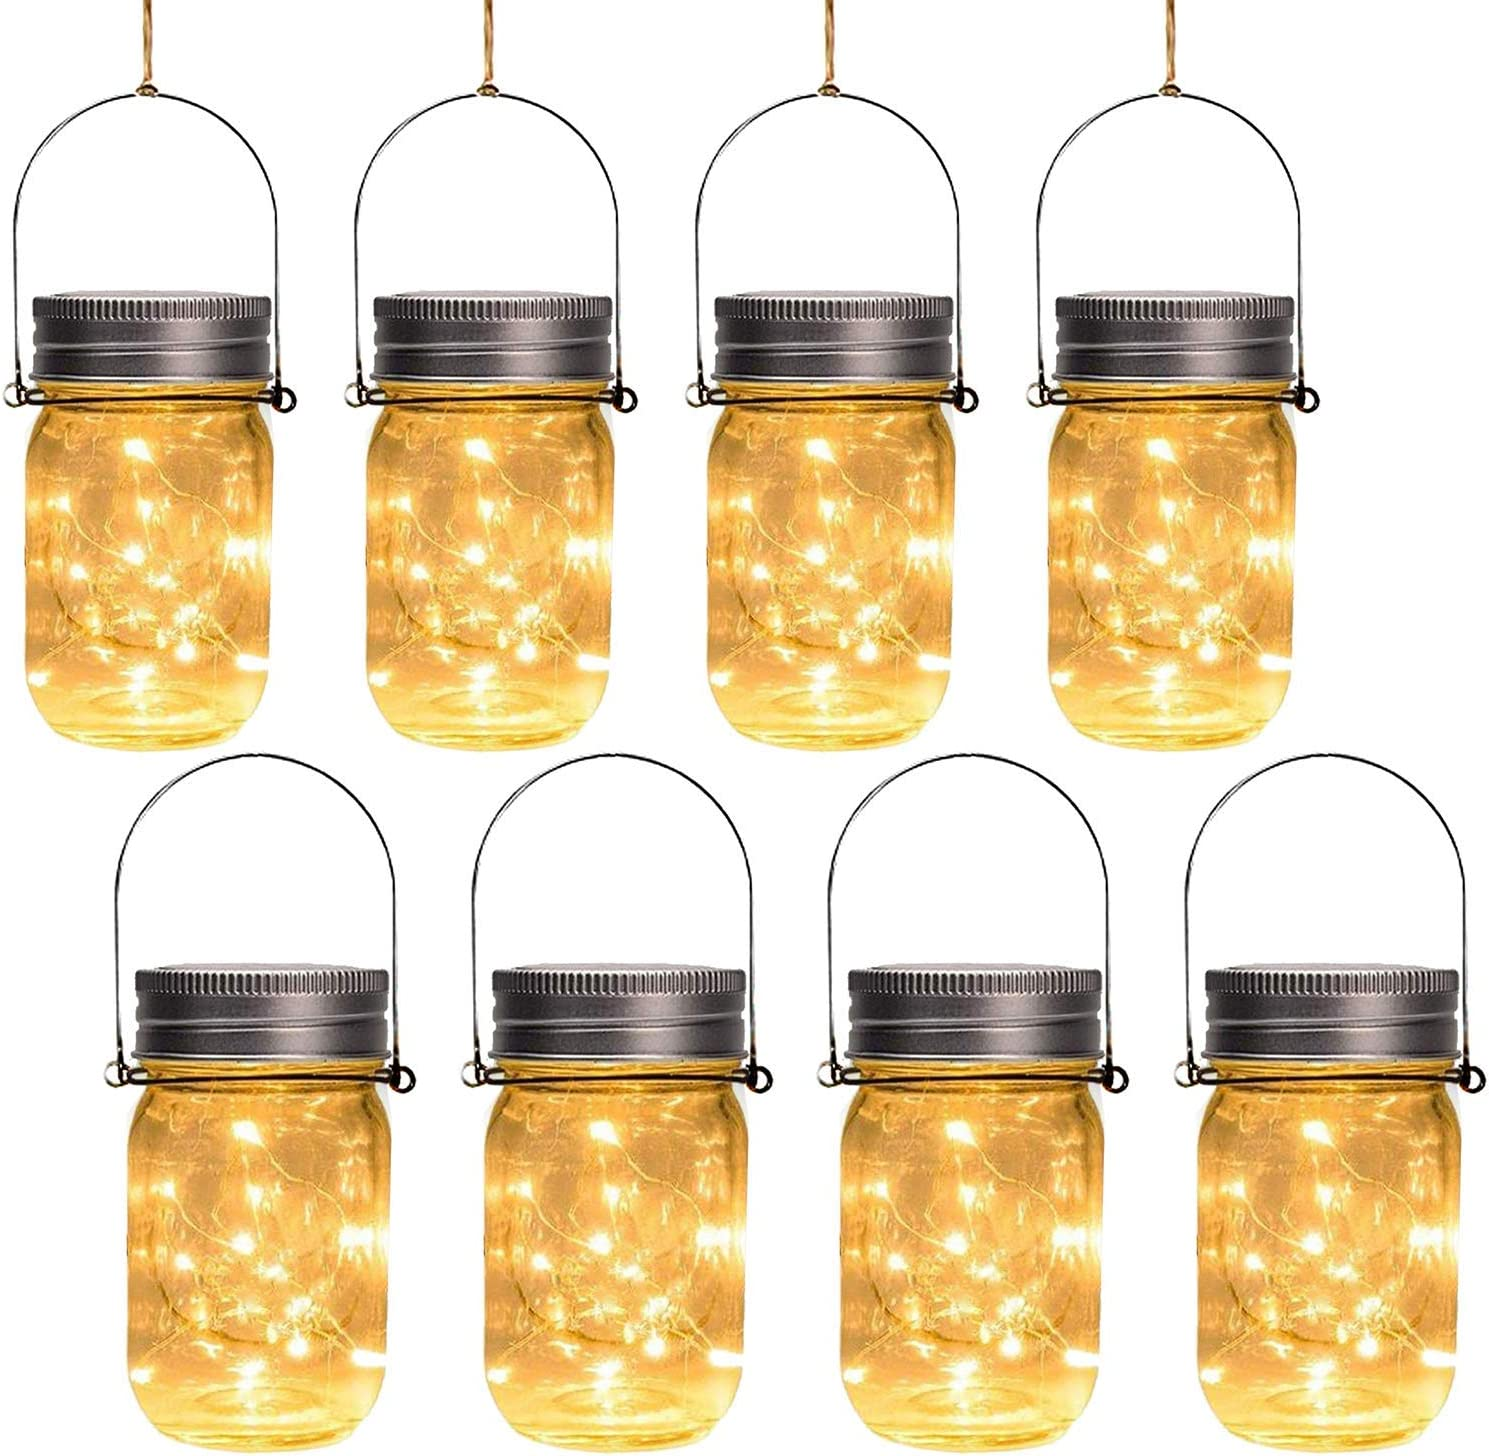 Otdair Solar Mason Jar Lights, Solar Powered Lanterns Outdoor Decorative, 30LED String Fairy Lights, Tree Lights Outdoor Hanging, for Room, Patio, Garden, Party, Wedding, Christmas, 8 PCS